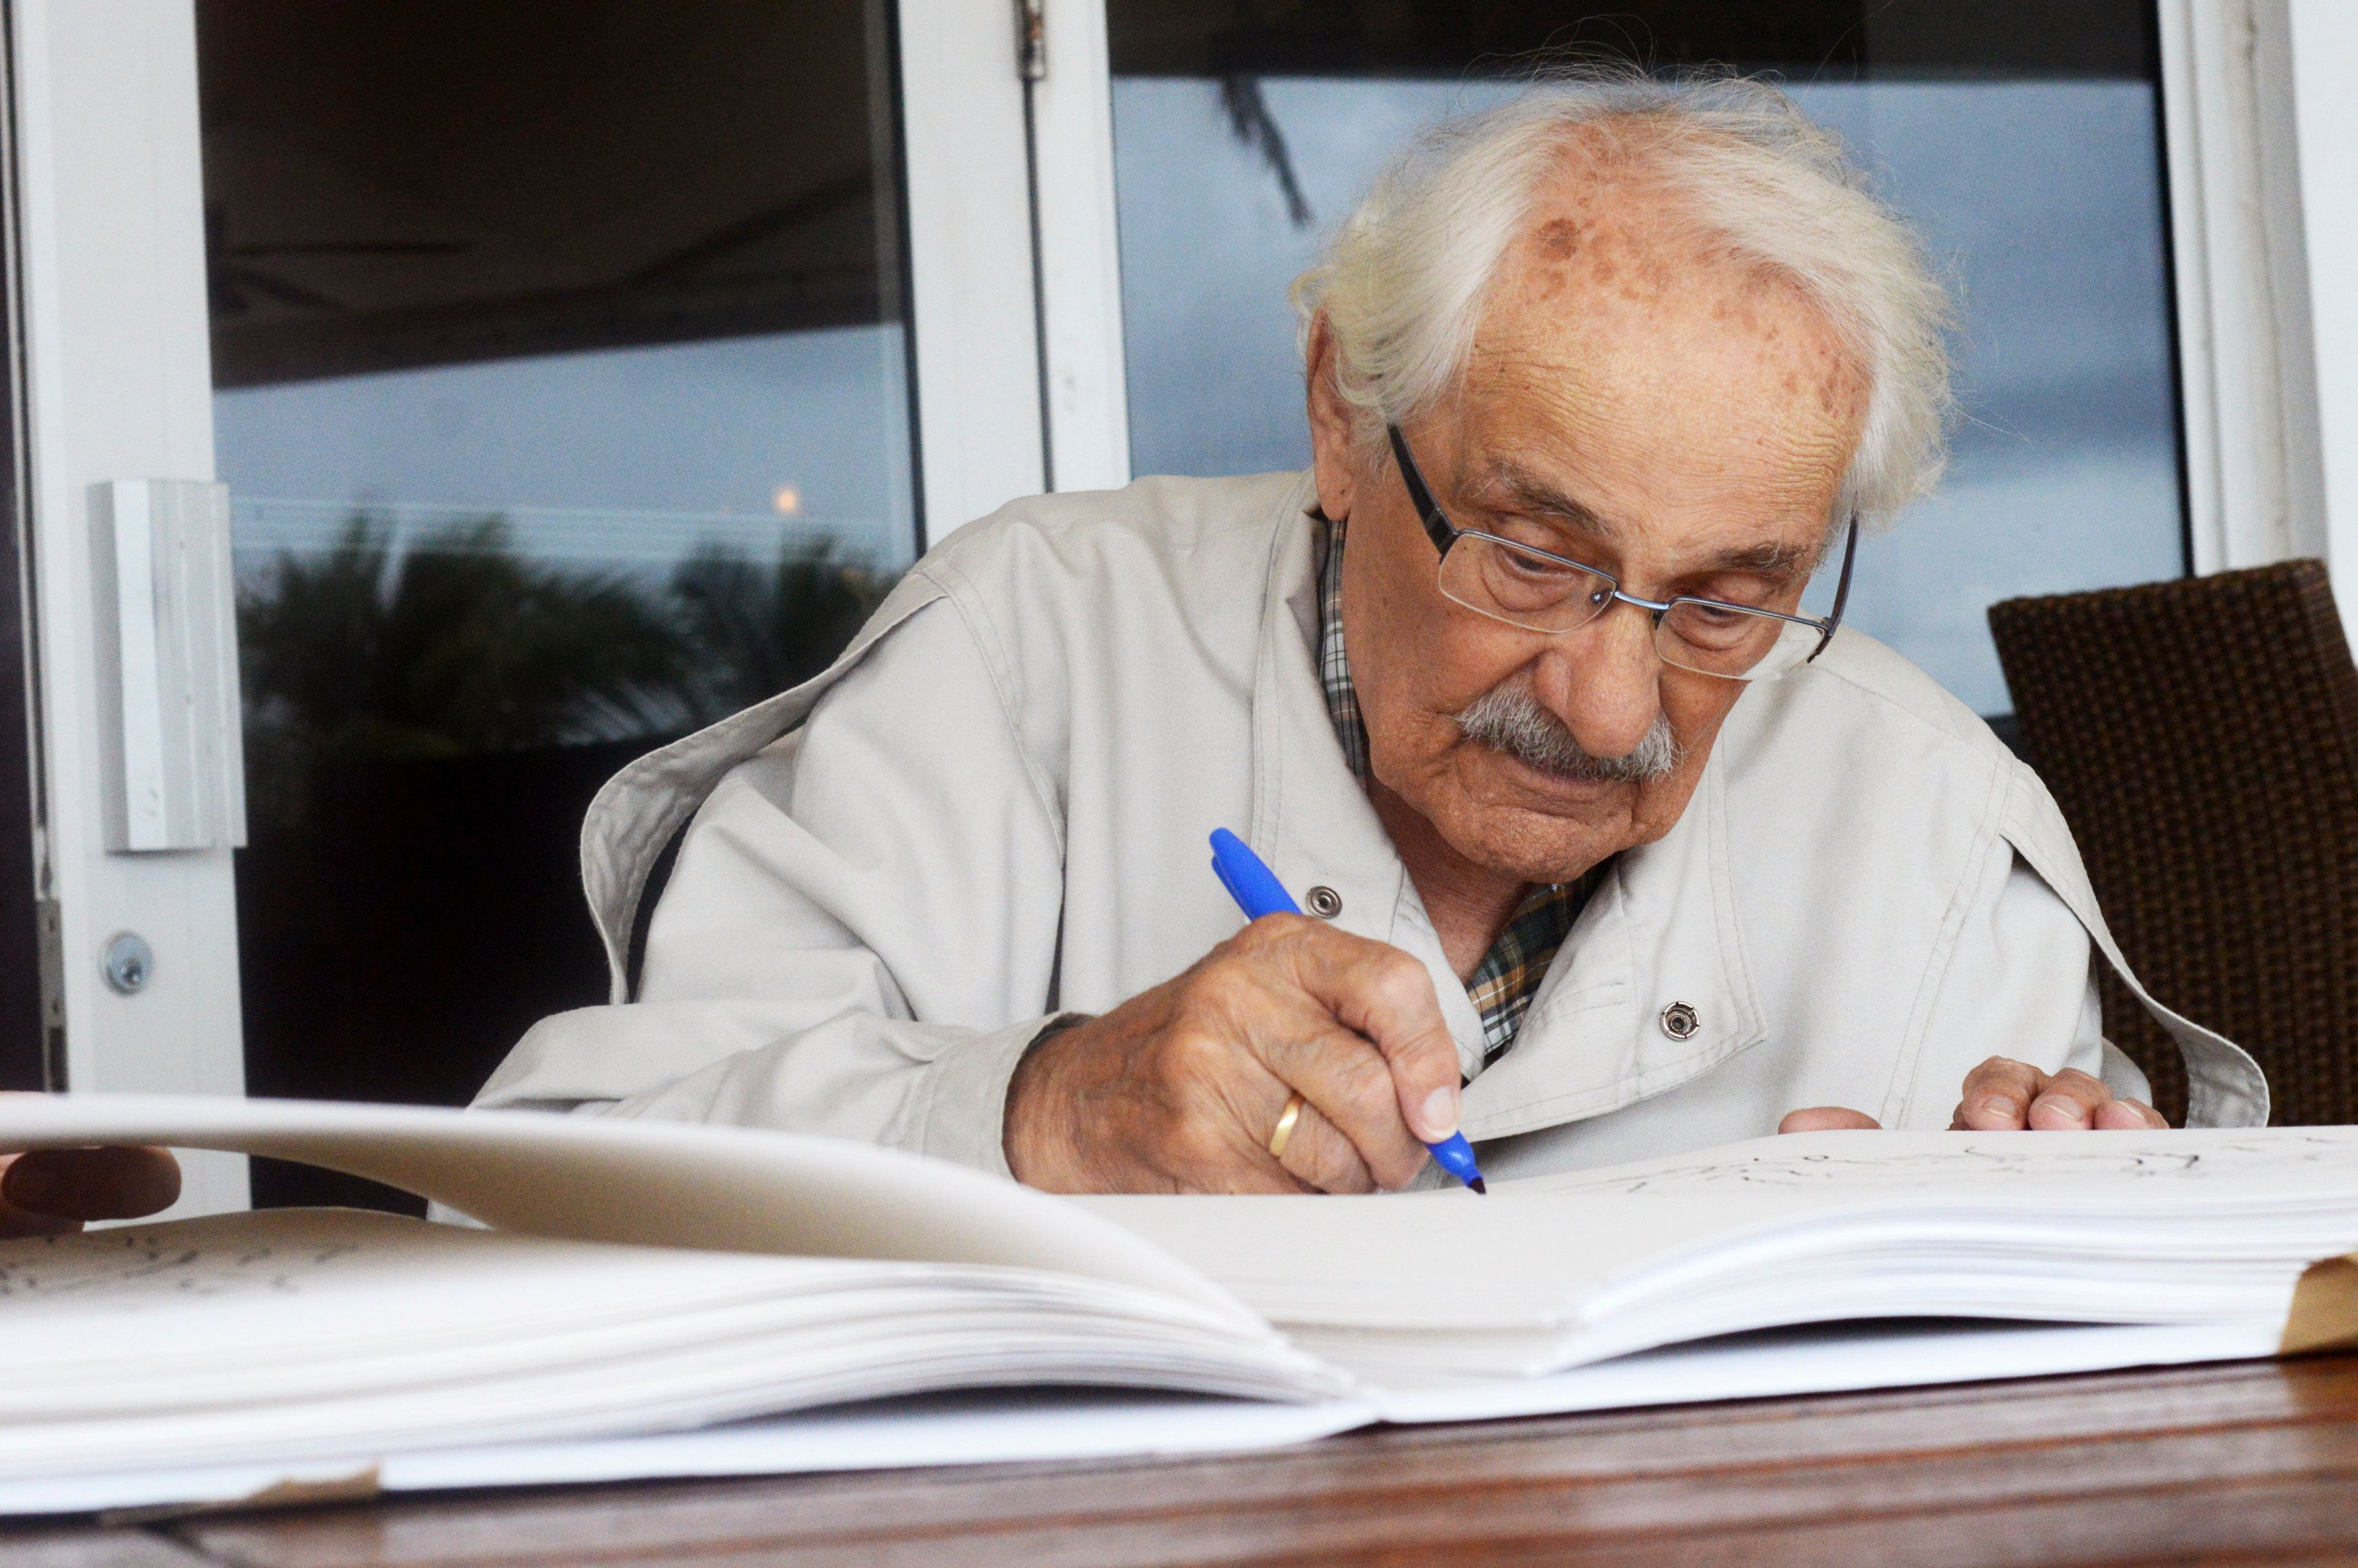 Samuel Willenberg, 92, the last known survivor of the Nazi extermination camp Treblinka in Poland and the subject of a film on the camp produced by Alan Tomlinson, signs sketches of one of his sculptures of scenes at Treblinka, in Miami Beach, Florida October 23, 2014. Willengberg began creating the sketches, which he recalls from his memory there, at the age of 70 after he retired. REUTERS/Zachary Fagenson    (UNITED STATES - Tags: ENTERTAINMENT CONFLICT)